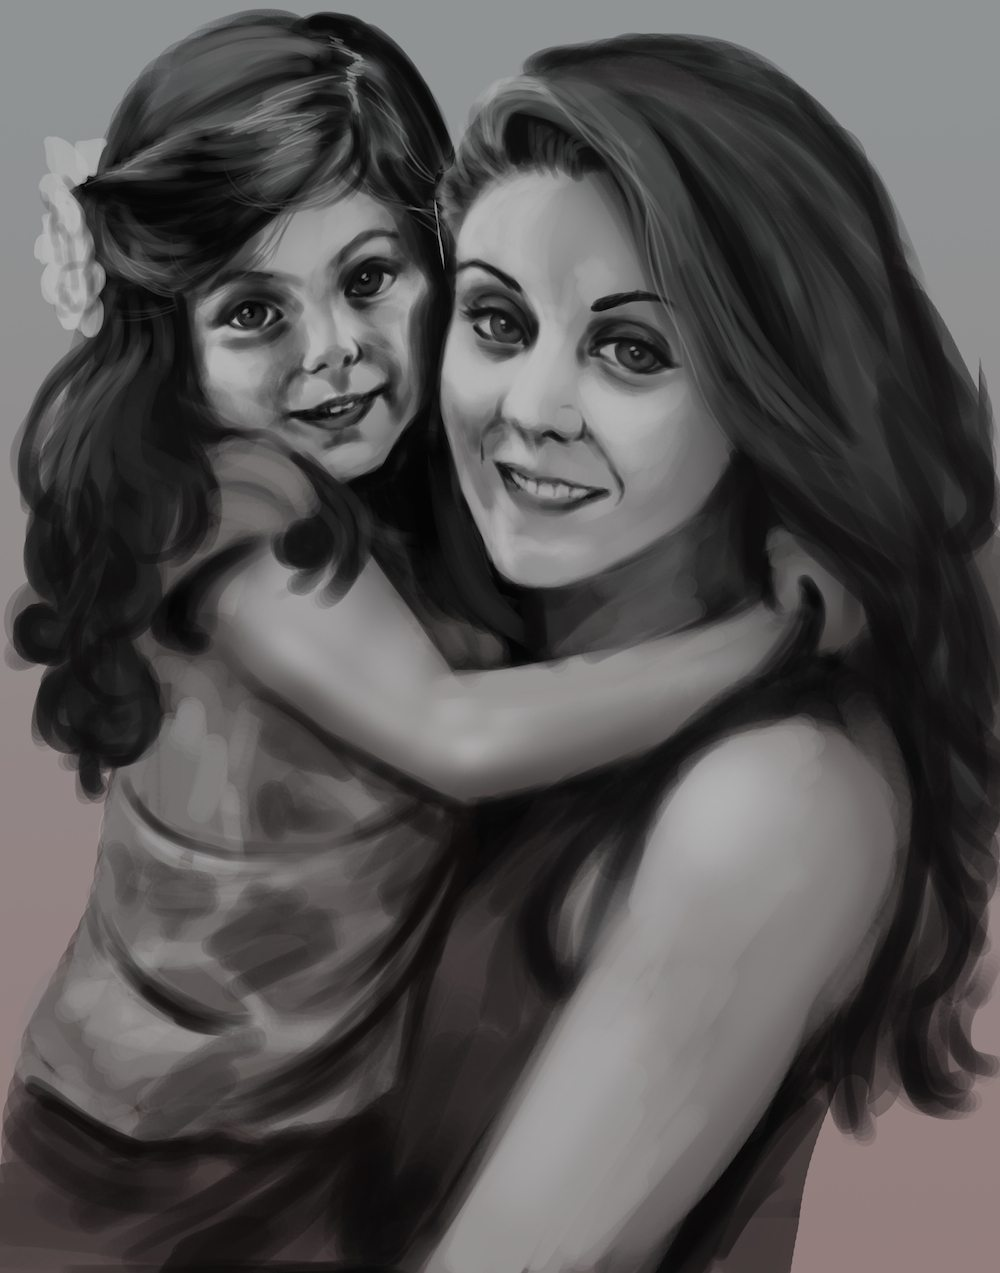 Draft Portrait of Mother and Daughter by Skobey1kanoby